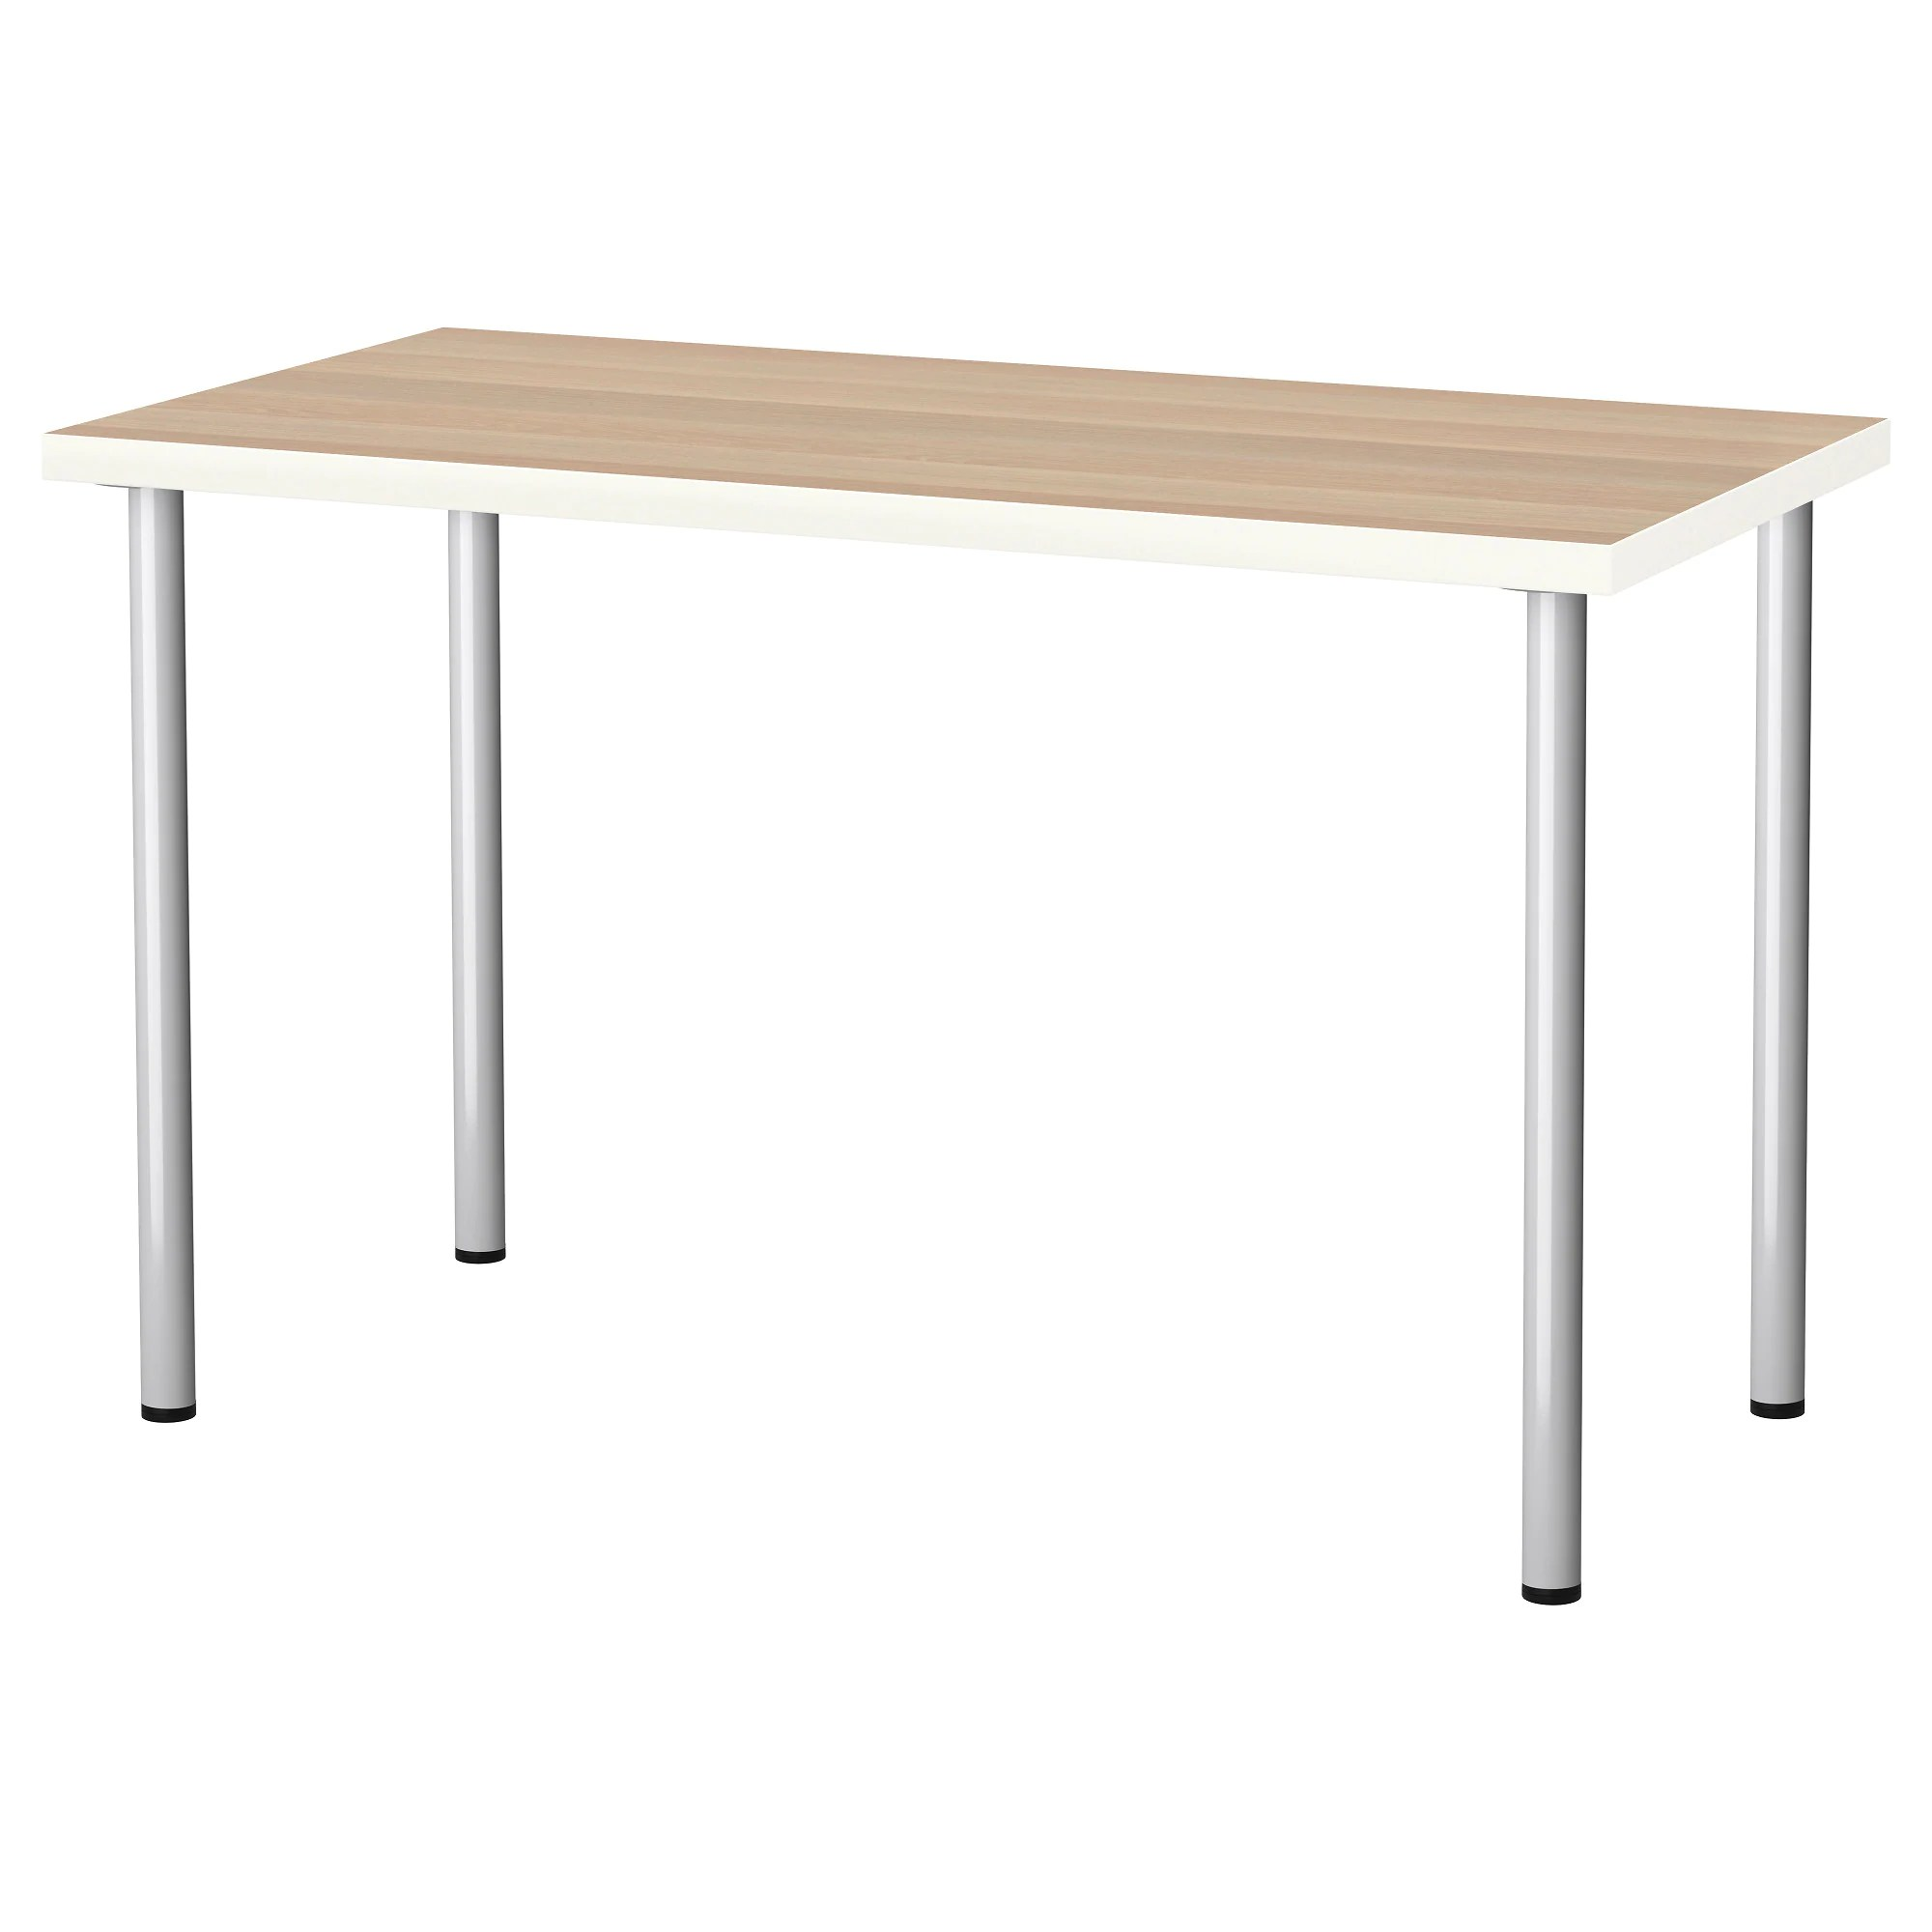 Ikea Table Linnmon Adils Table Black Brown Black